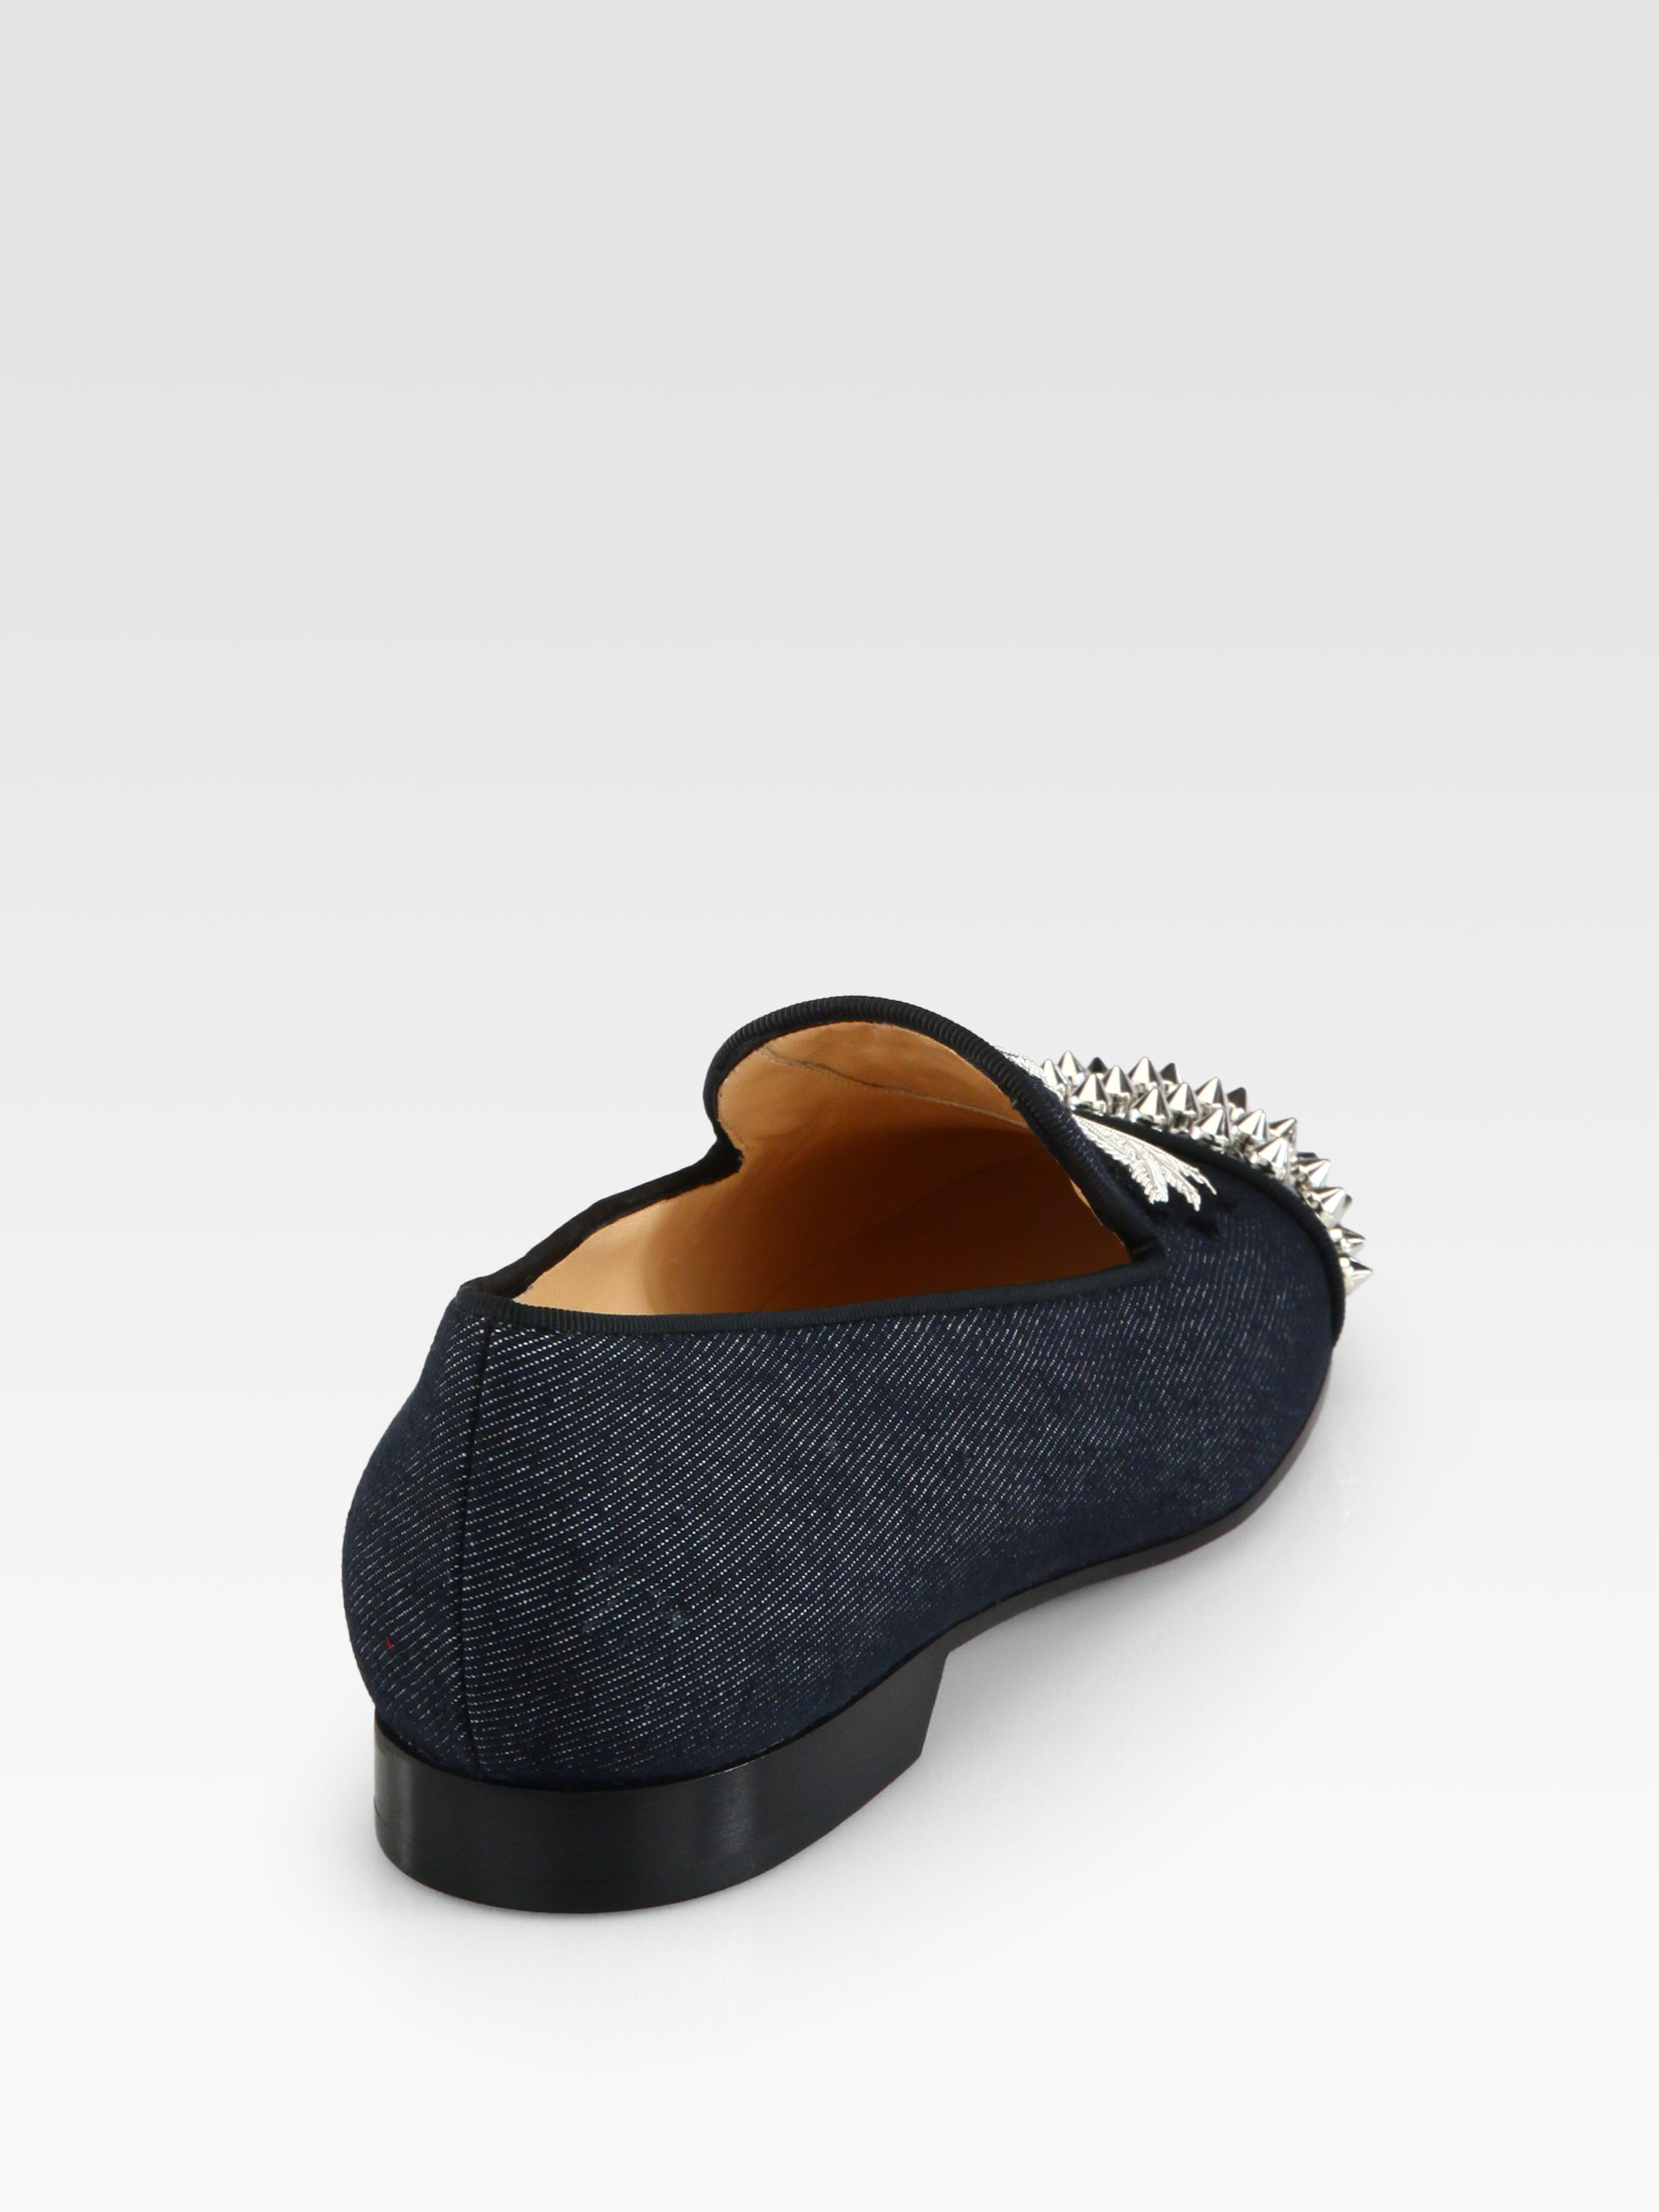 christian louboutin leather loafers | cosmetics digital innovation ...